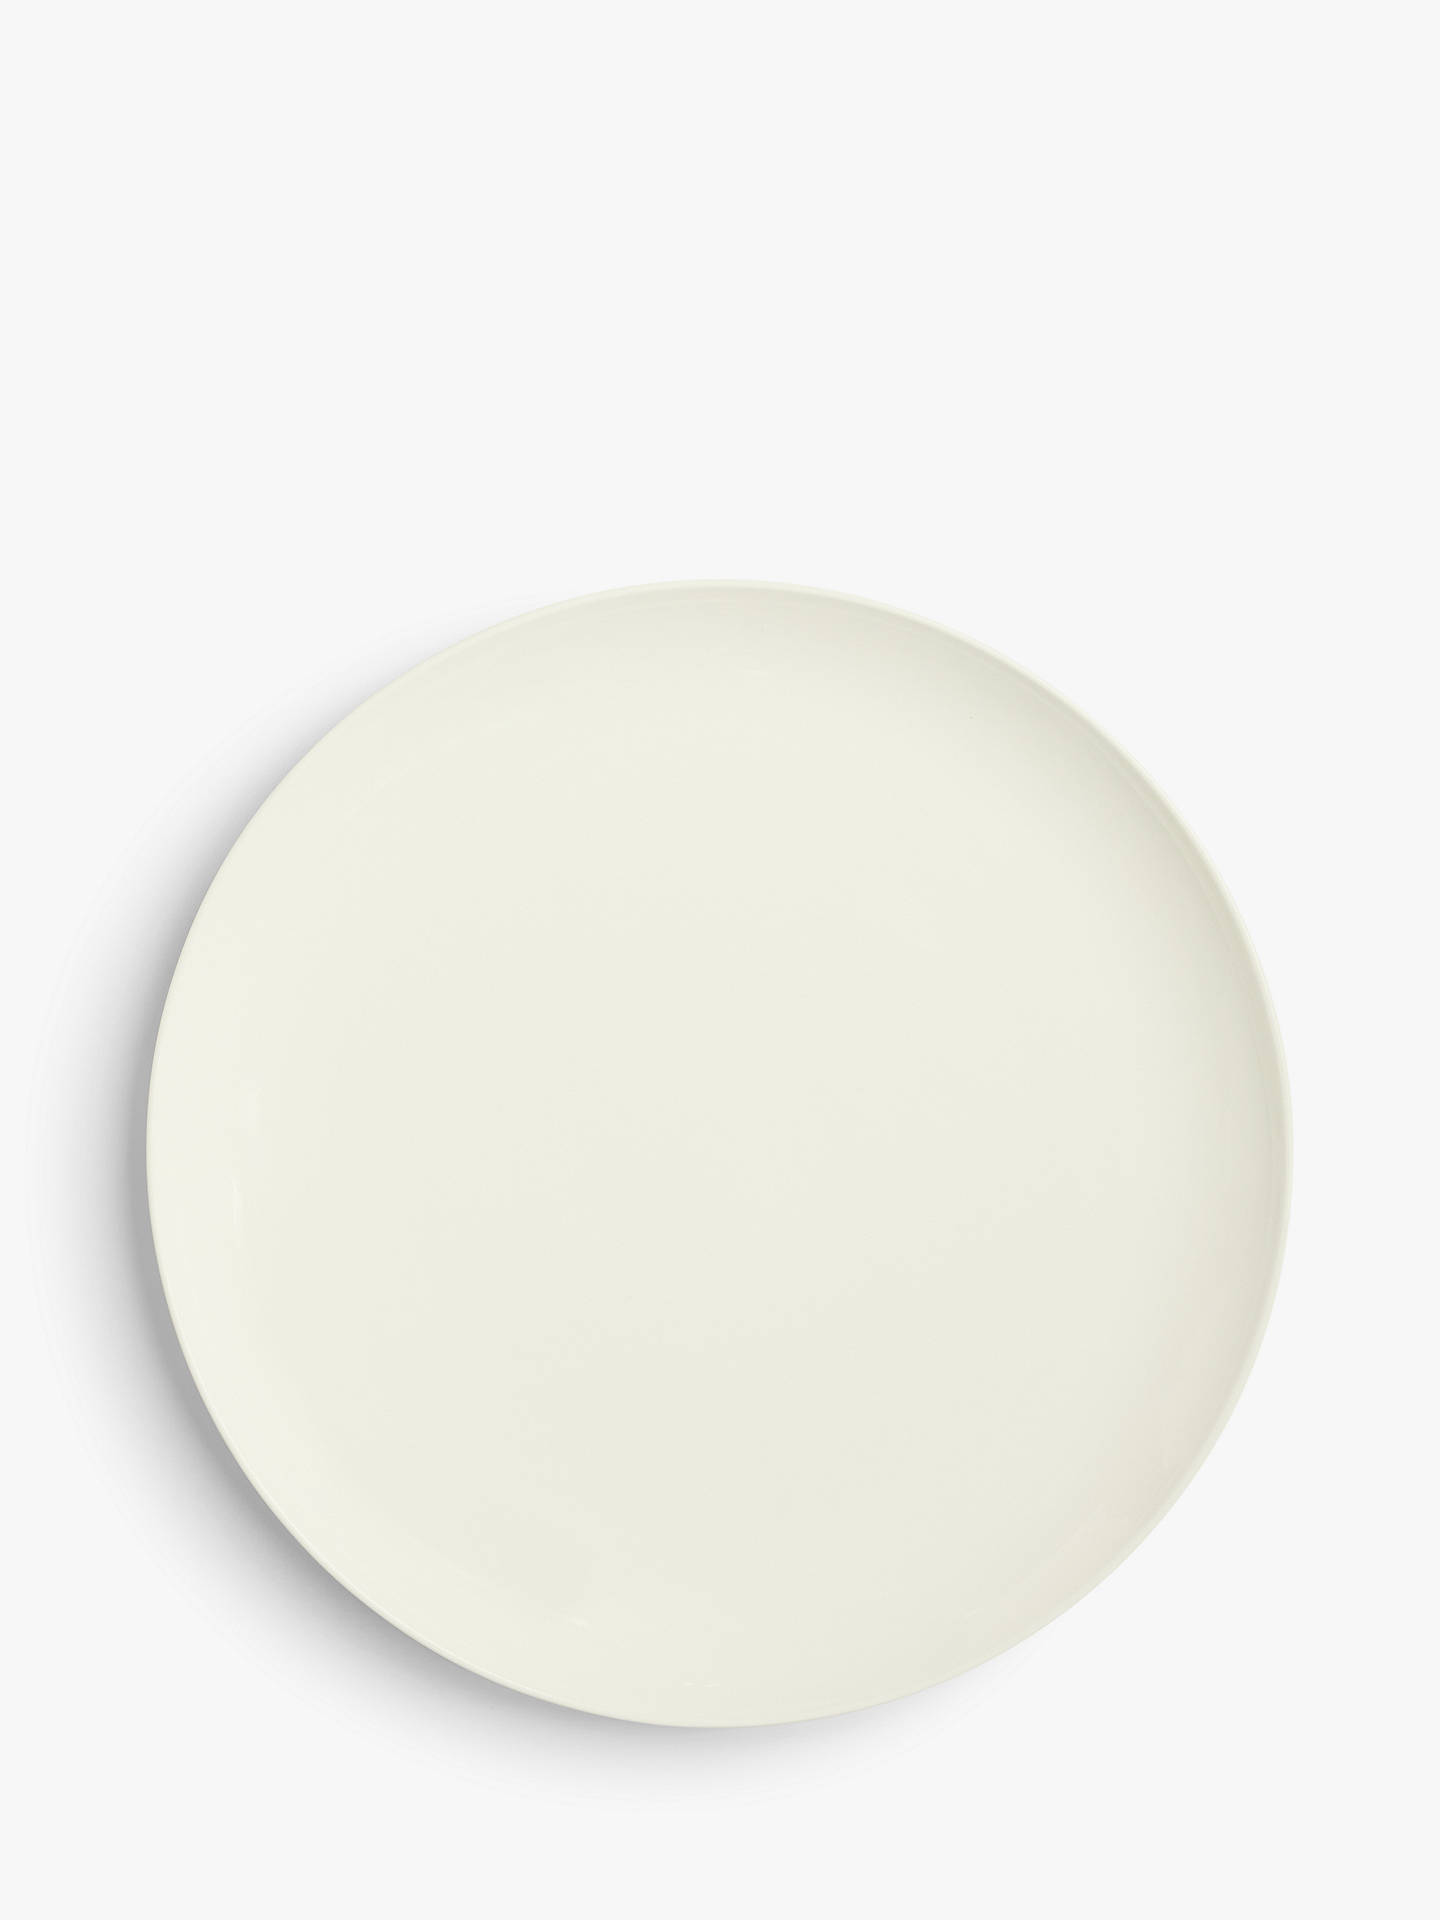 Buy John Lewis & Partners Contour Bone China Dinner Plate, White, Dia.27.6cm Online at johnlewis.com